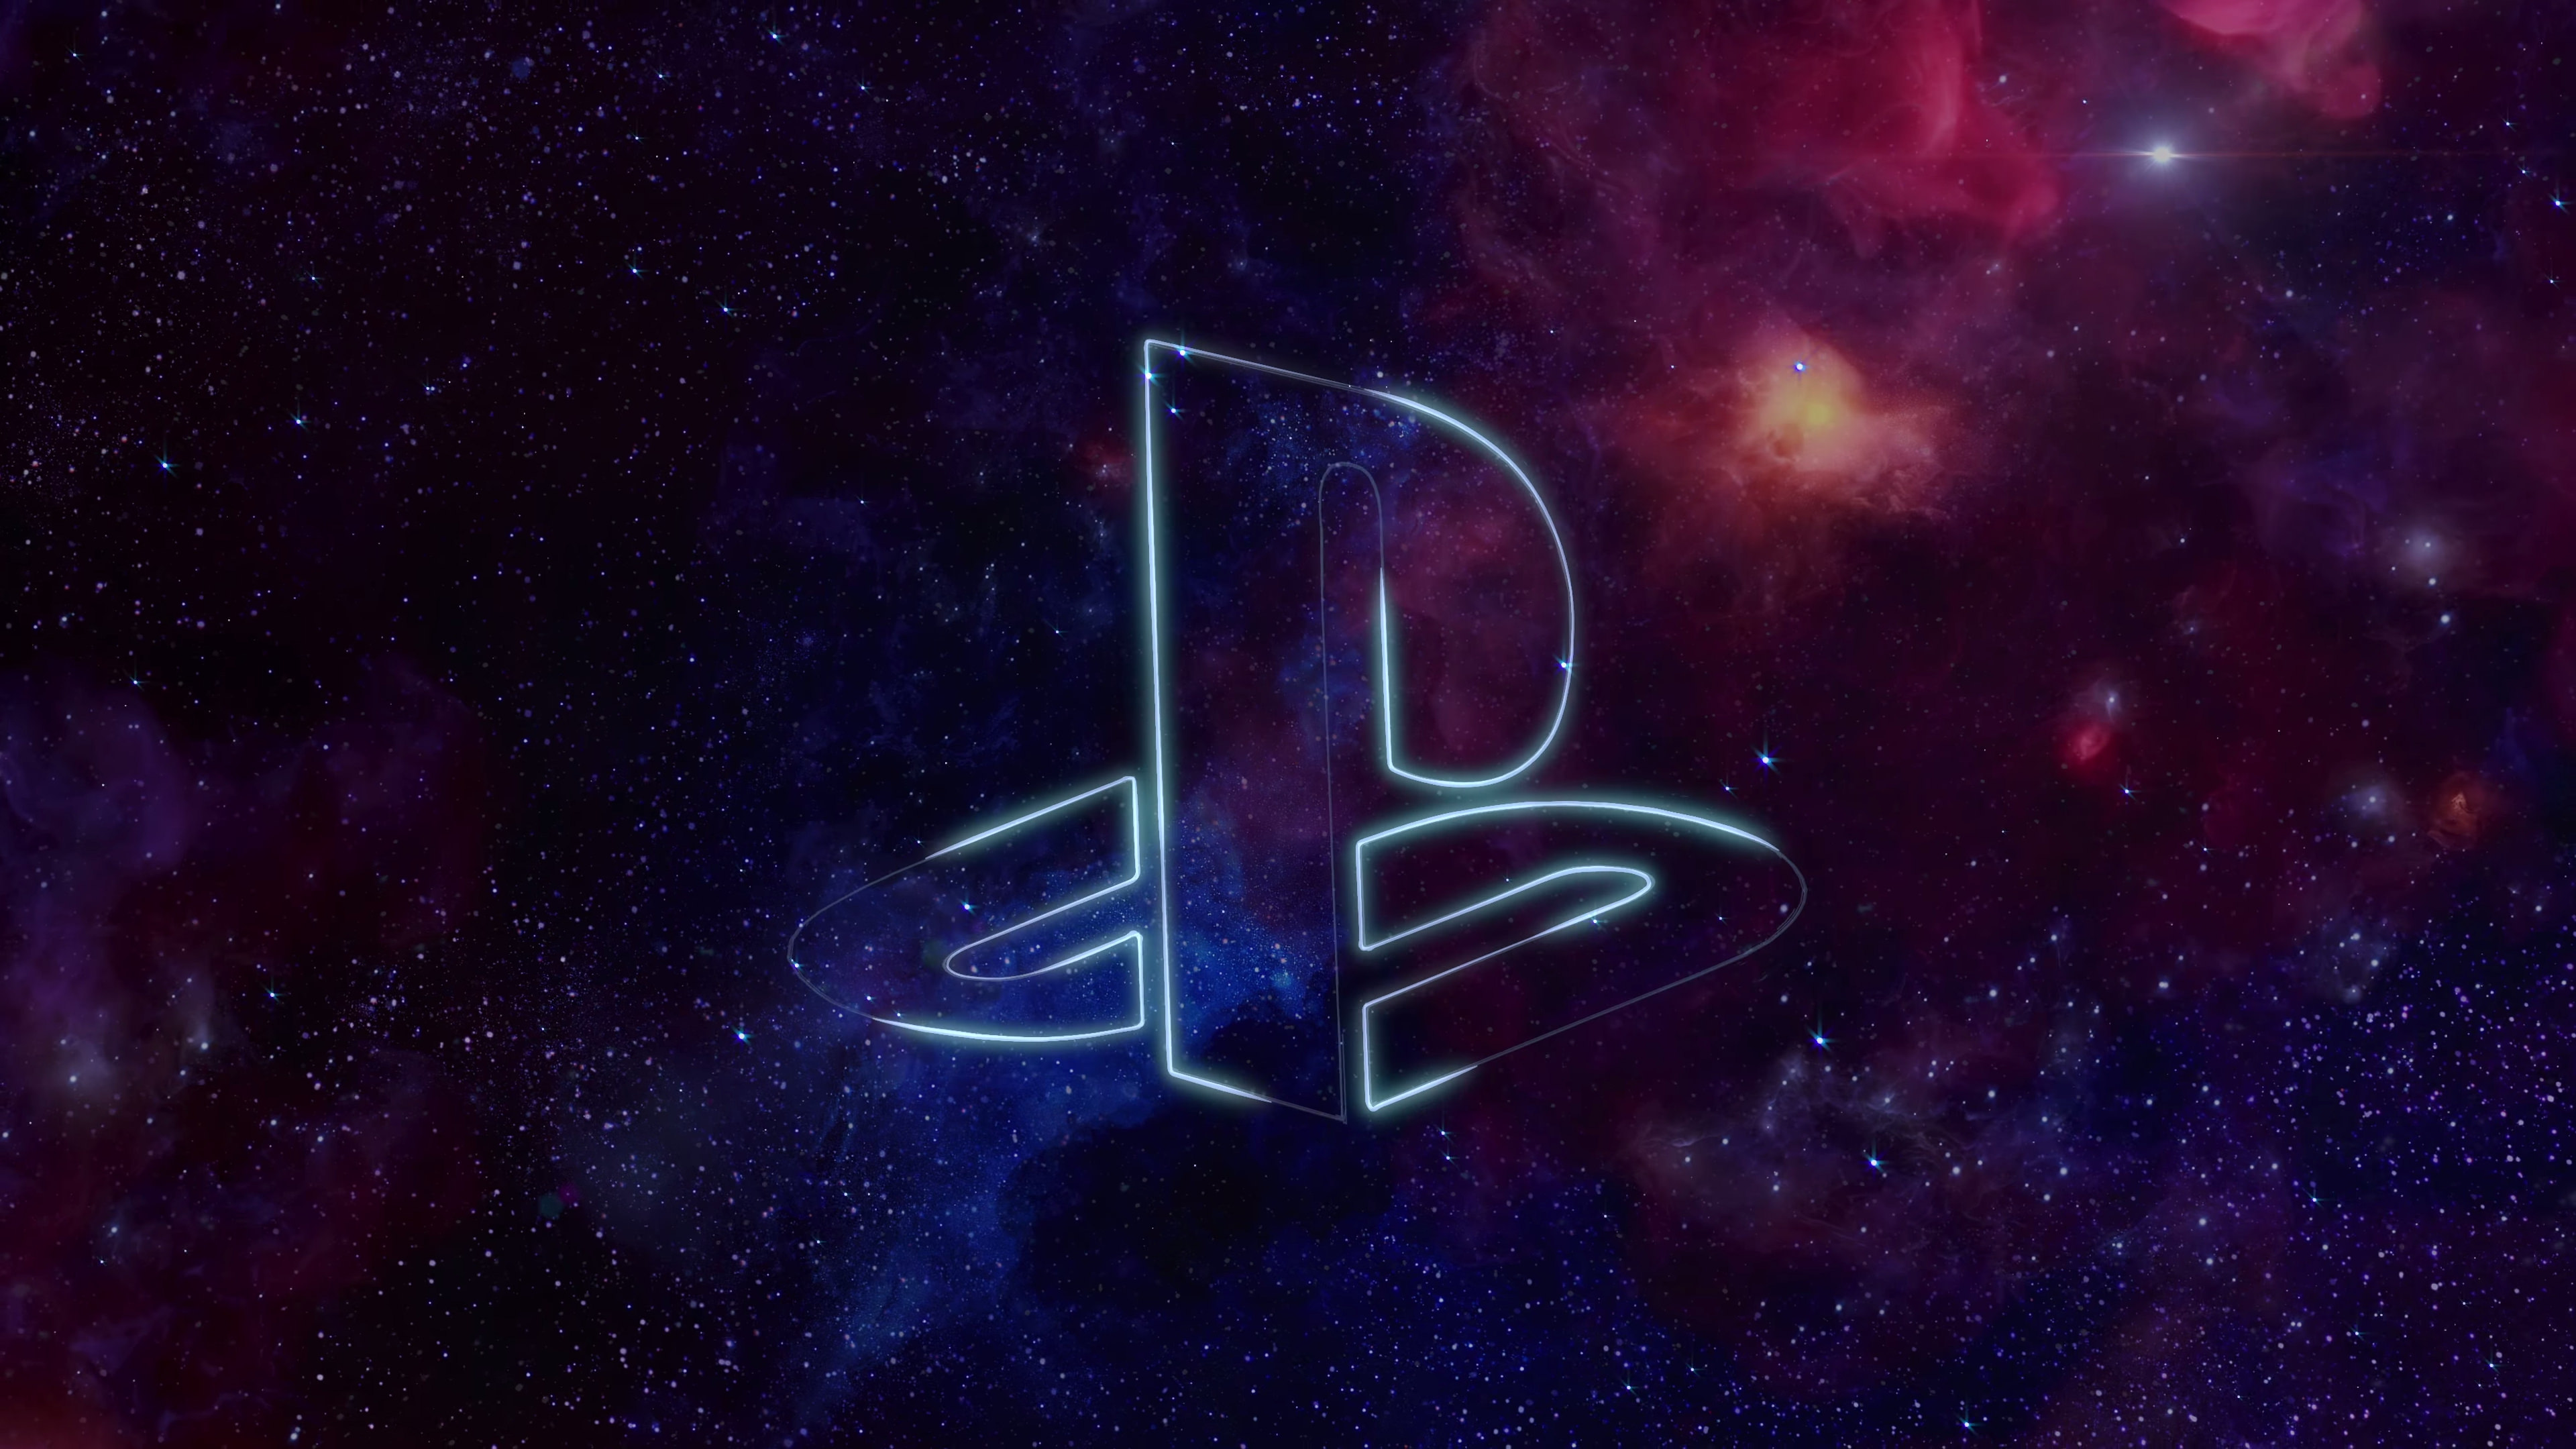 Ps E3 2018 Logo Hd Computer 4k Wallpapers Images Backgrounds Photos And Pictures